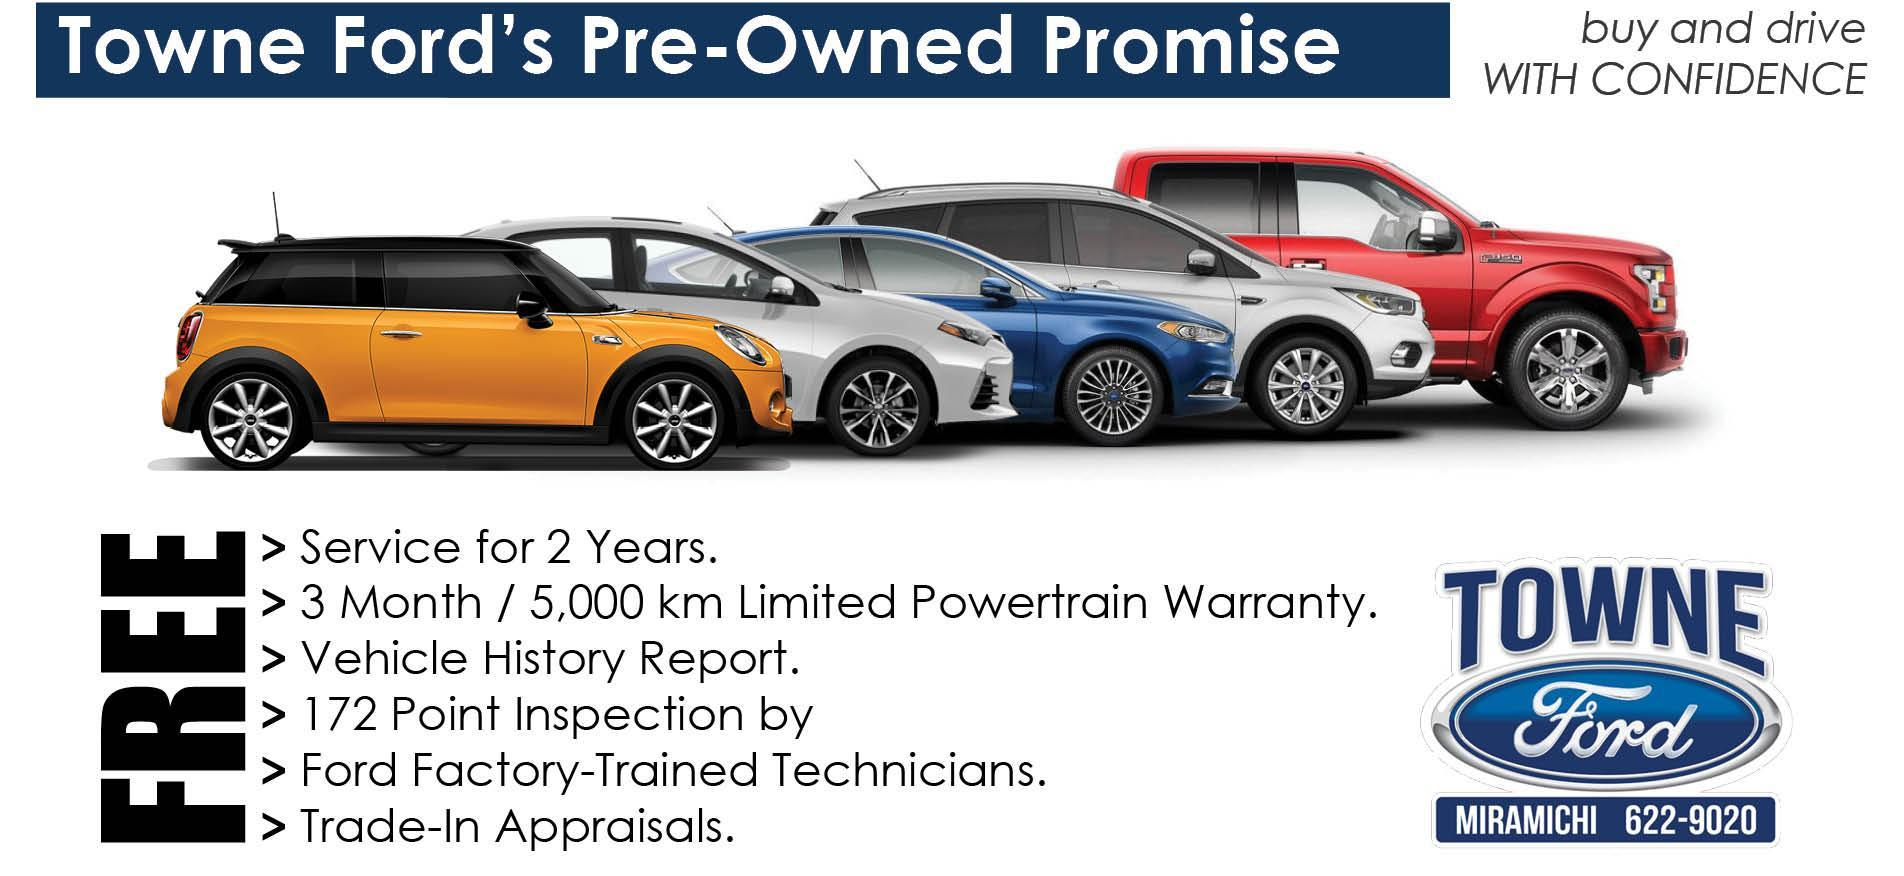 Pre-Owned Promise